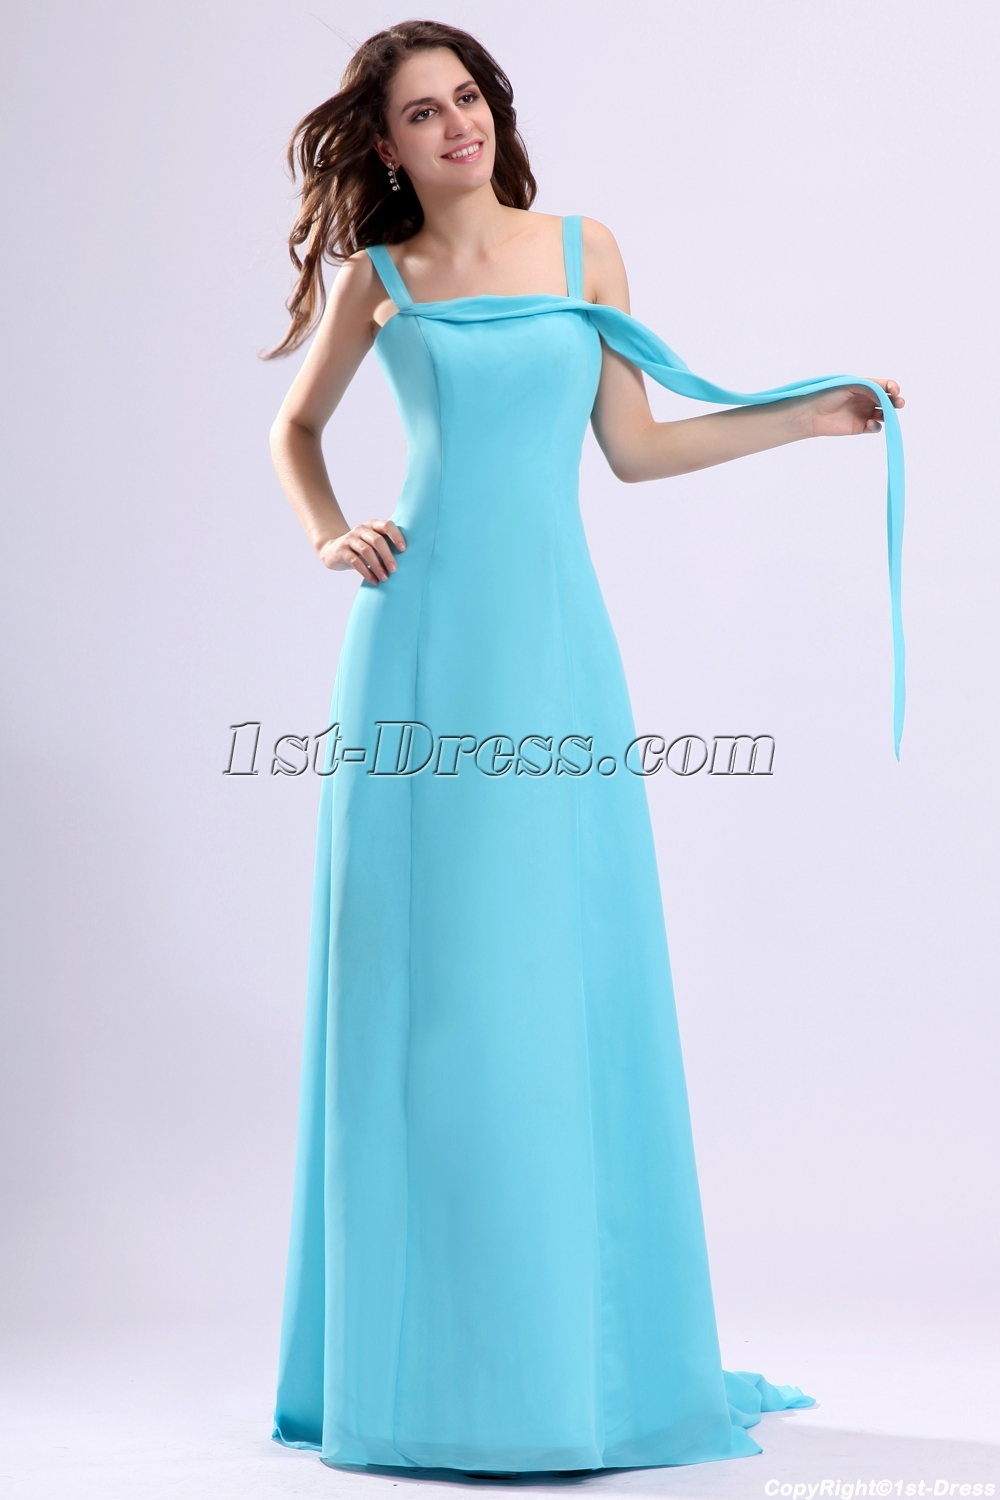 images/201311/big/Straps-Blue-Chiffon-Formal-Prom-Gown-with-Train-3512-b-1-1384422305.jpg